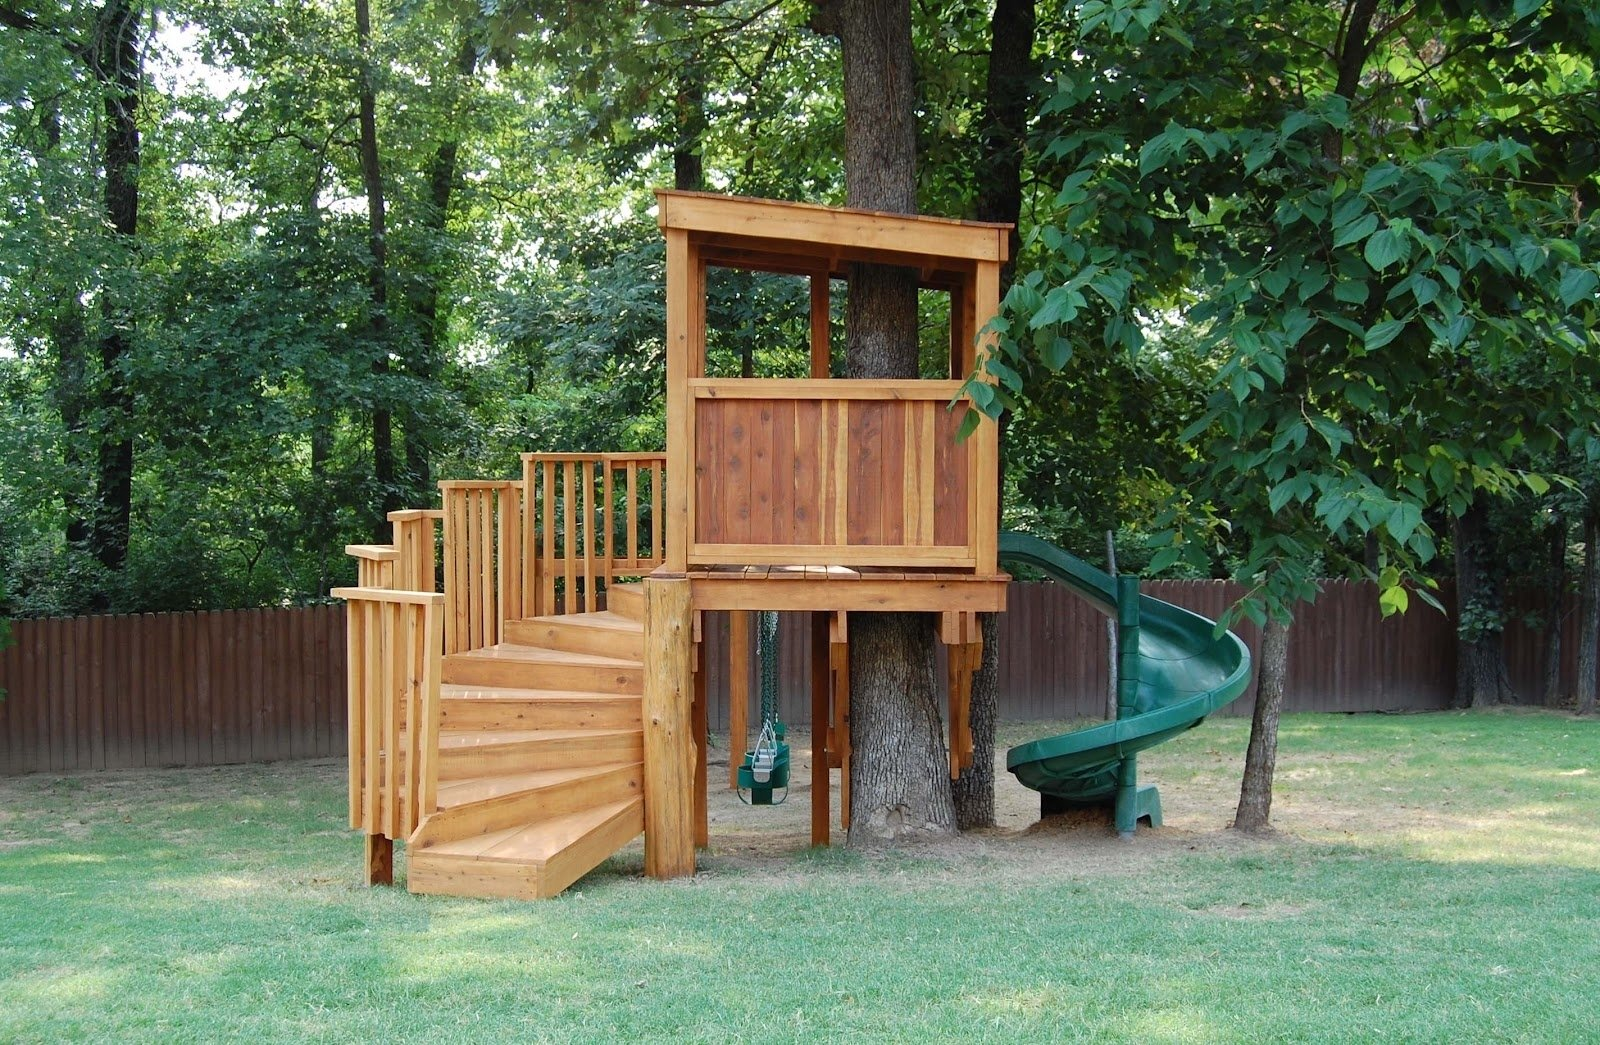 10 Wonderful Tree House Ideas For Kids comfortable simple tree house plans for kids with unique shape green 2020